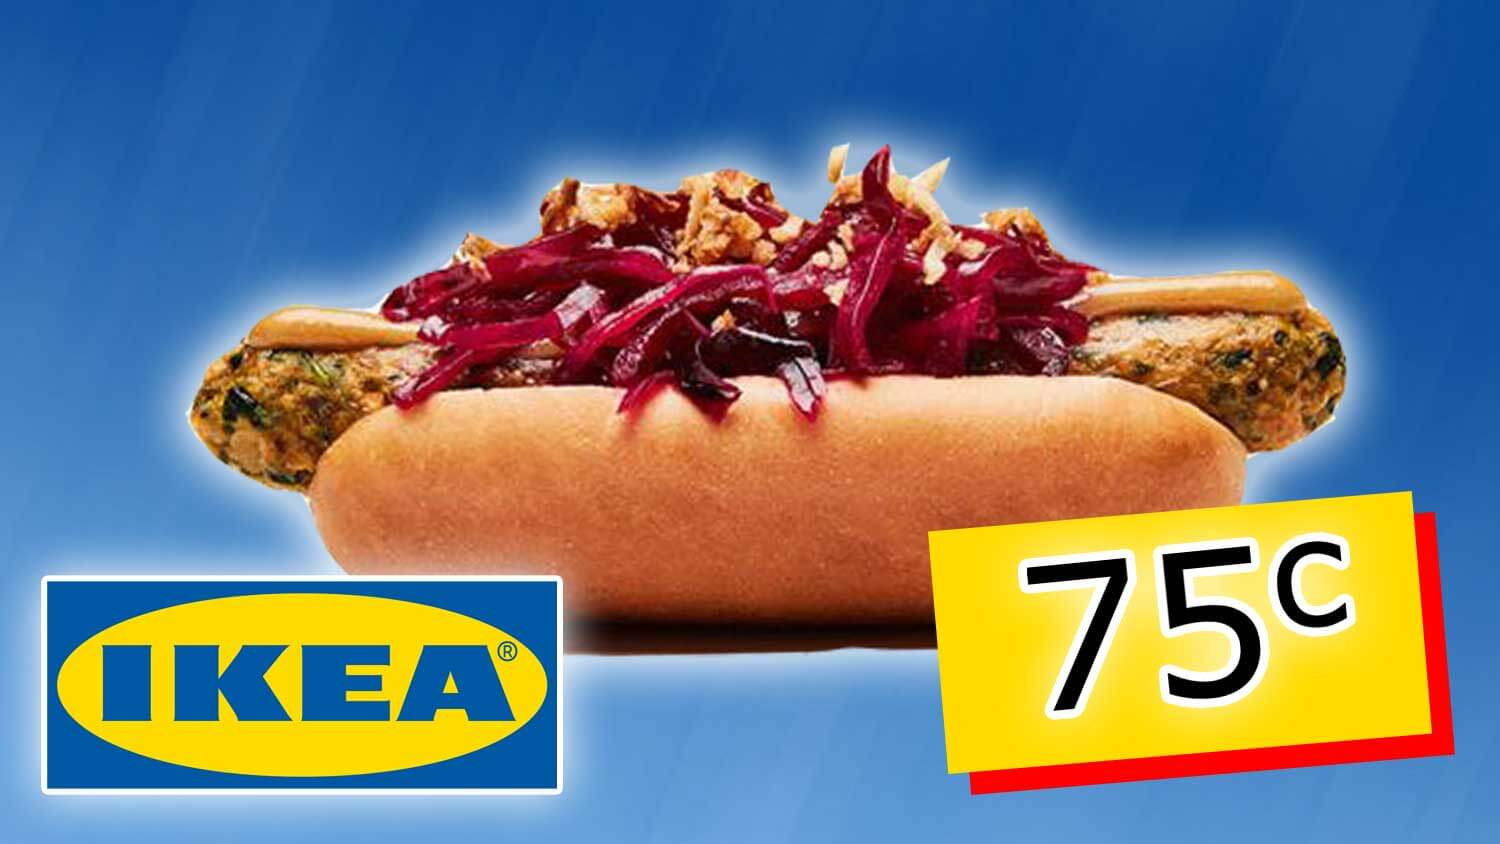 IKEA Just Made Its Vegan Hot Dogs Cheaper Than the Meat Version